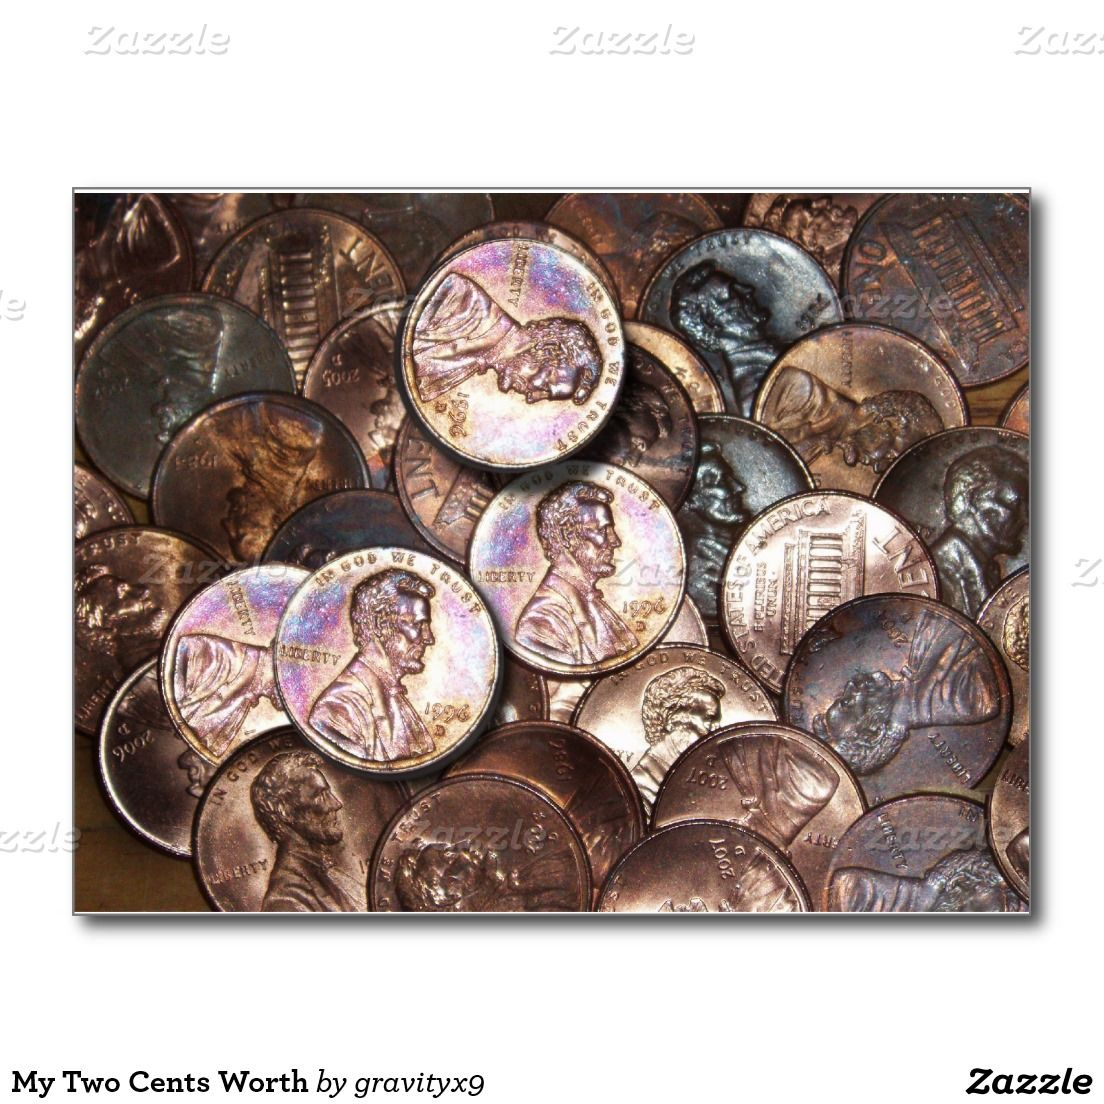 My Two Cents Worth Postcard #Pennies #Money #Coins #Zazzle